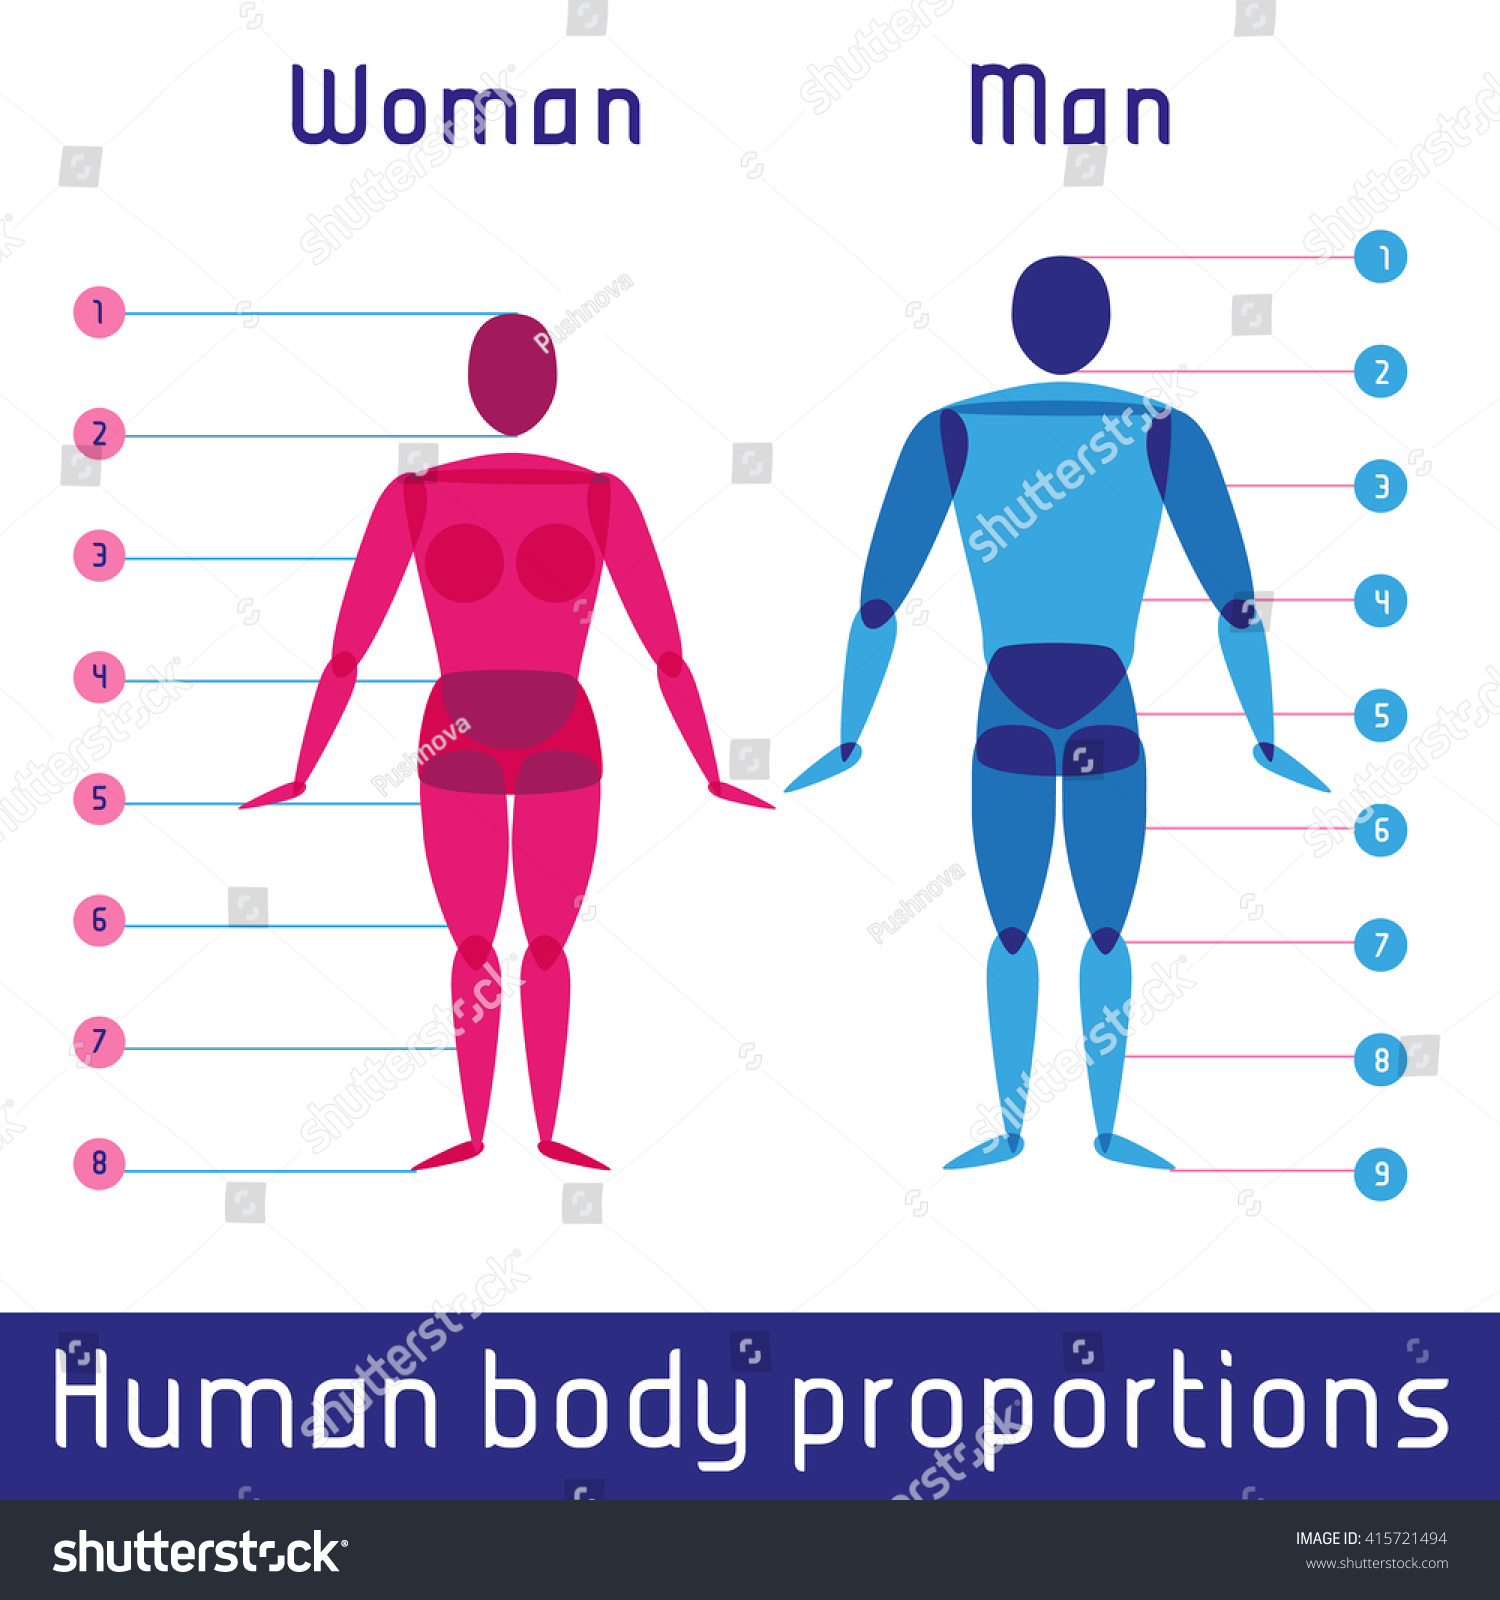 Human Body Measurements And Proportions Education